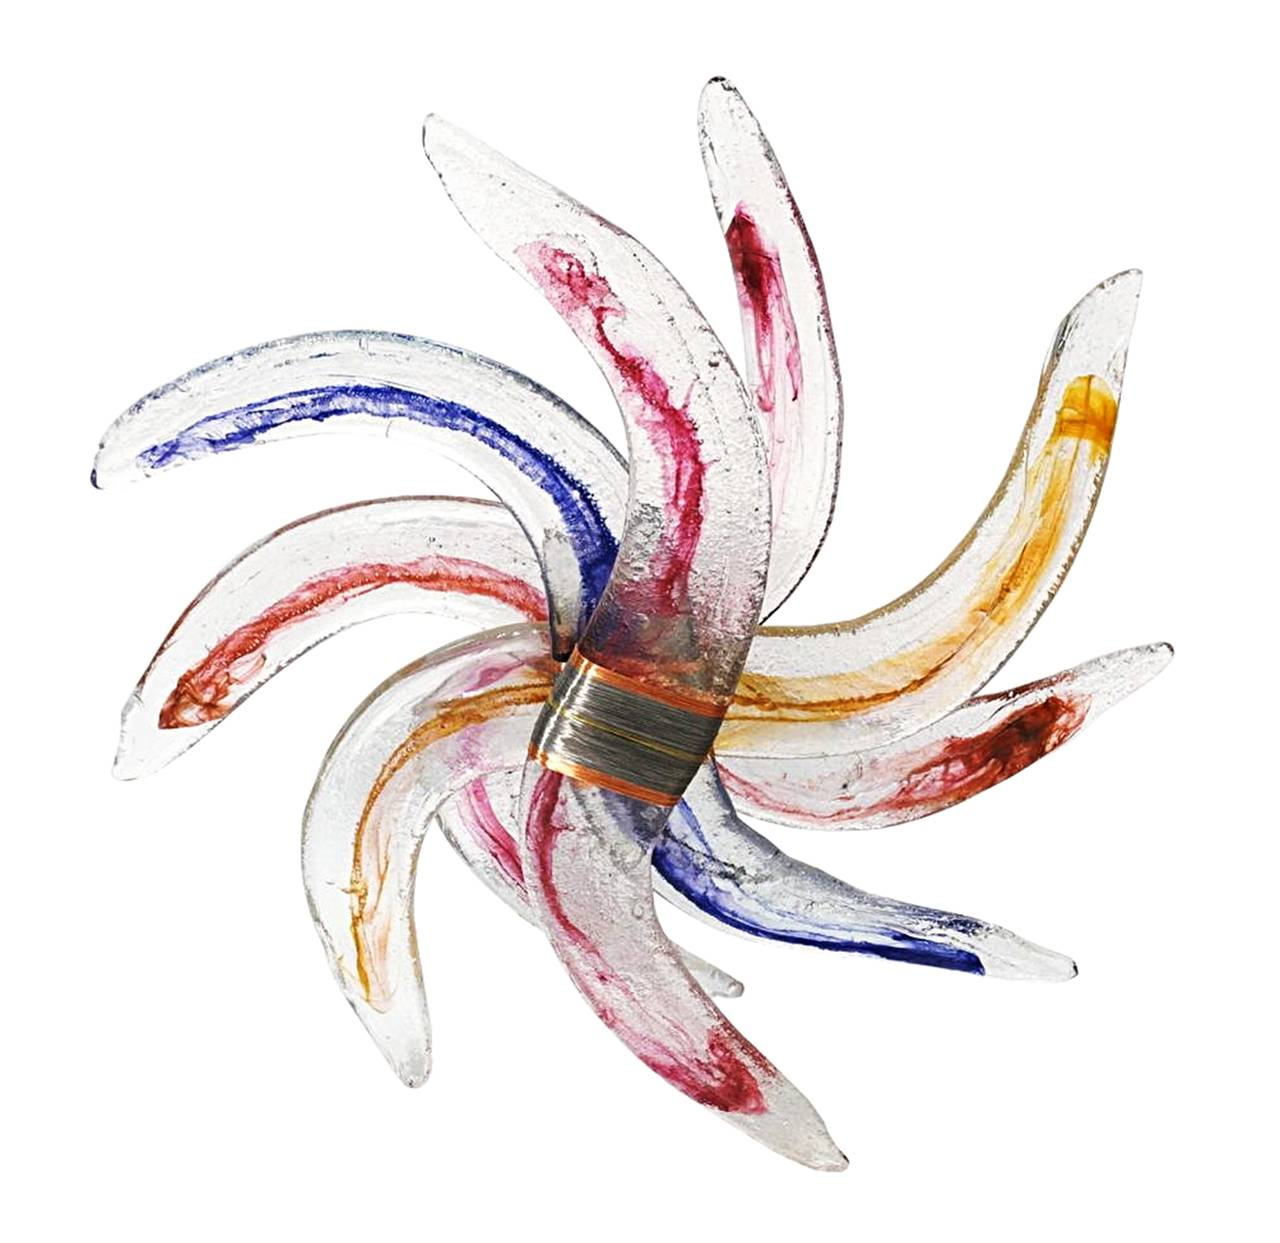 Monumental glass floor sculpture in a pinwheel form with copper and steel wrapped center details.  The glass has a wonderful textured and there are bright blue, red, yellow and orange colors infused on the glass. The sculpture can seat on the